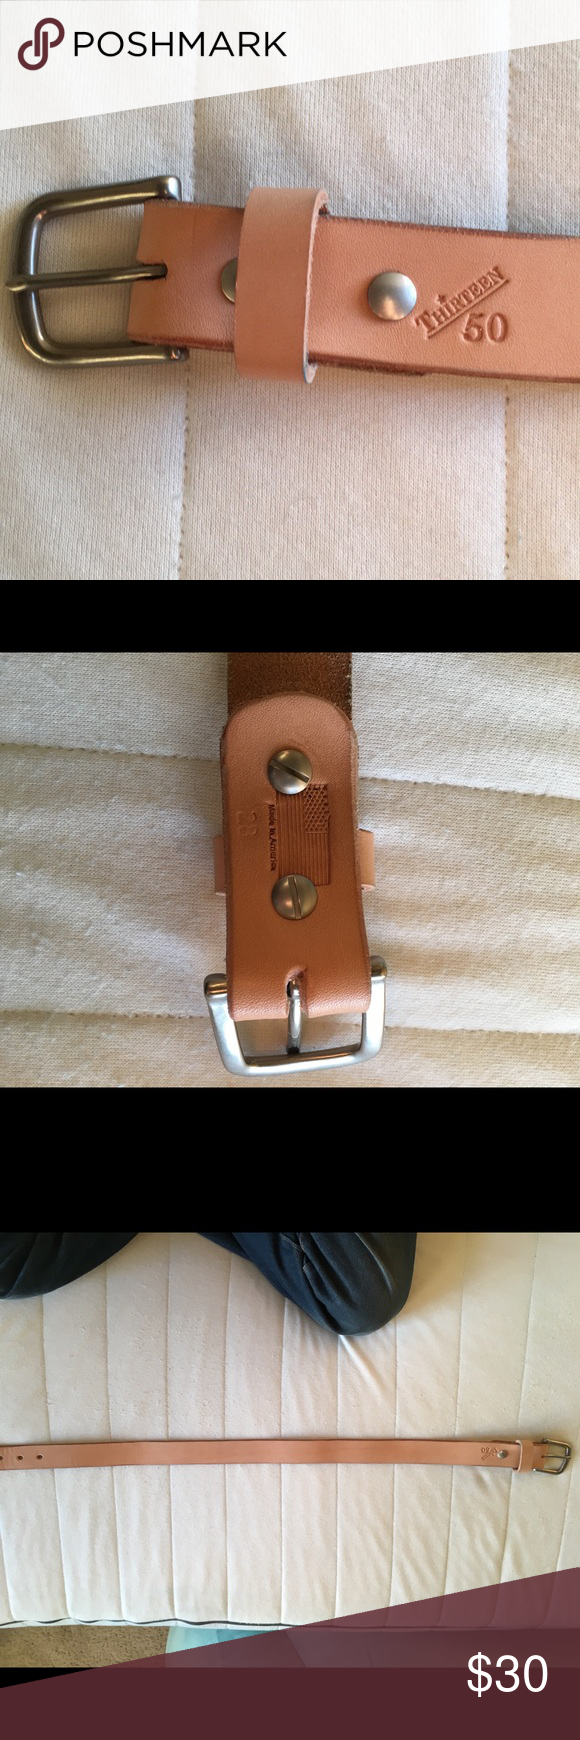 Thirteen50 : thirteen50, Thirteen, Leather, Belt,, Leather,